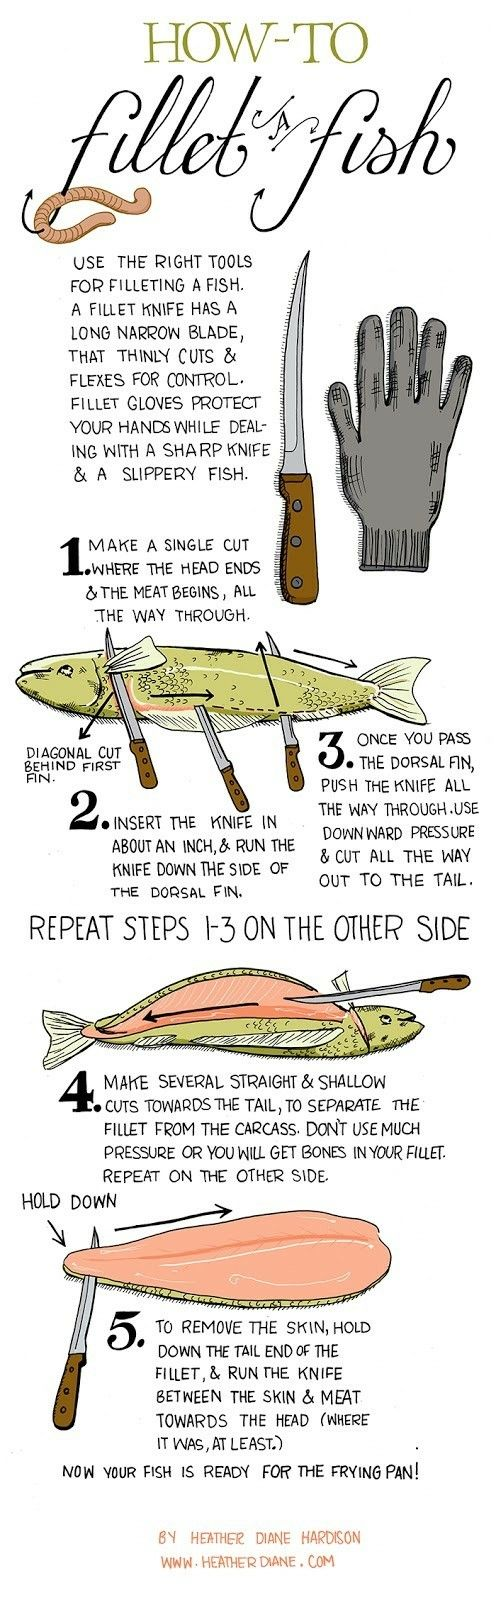 How to fillet a fish. Learn this one and you'll level up your camping game. It's good to have emergency skills when you love adventure.